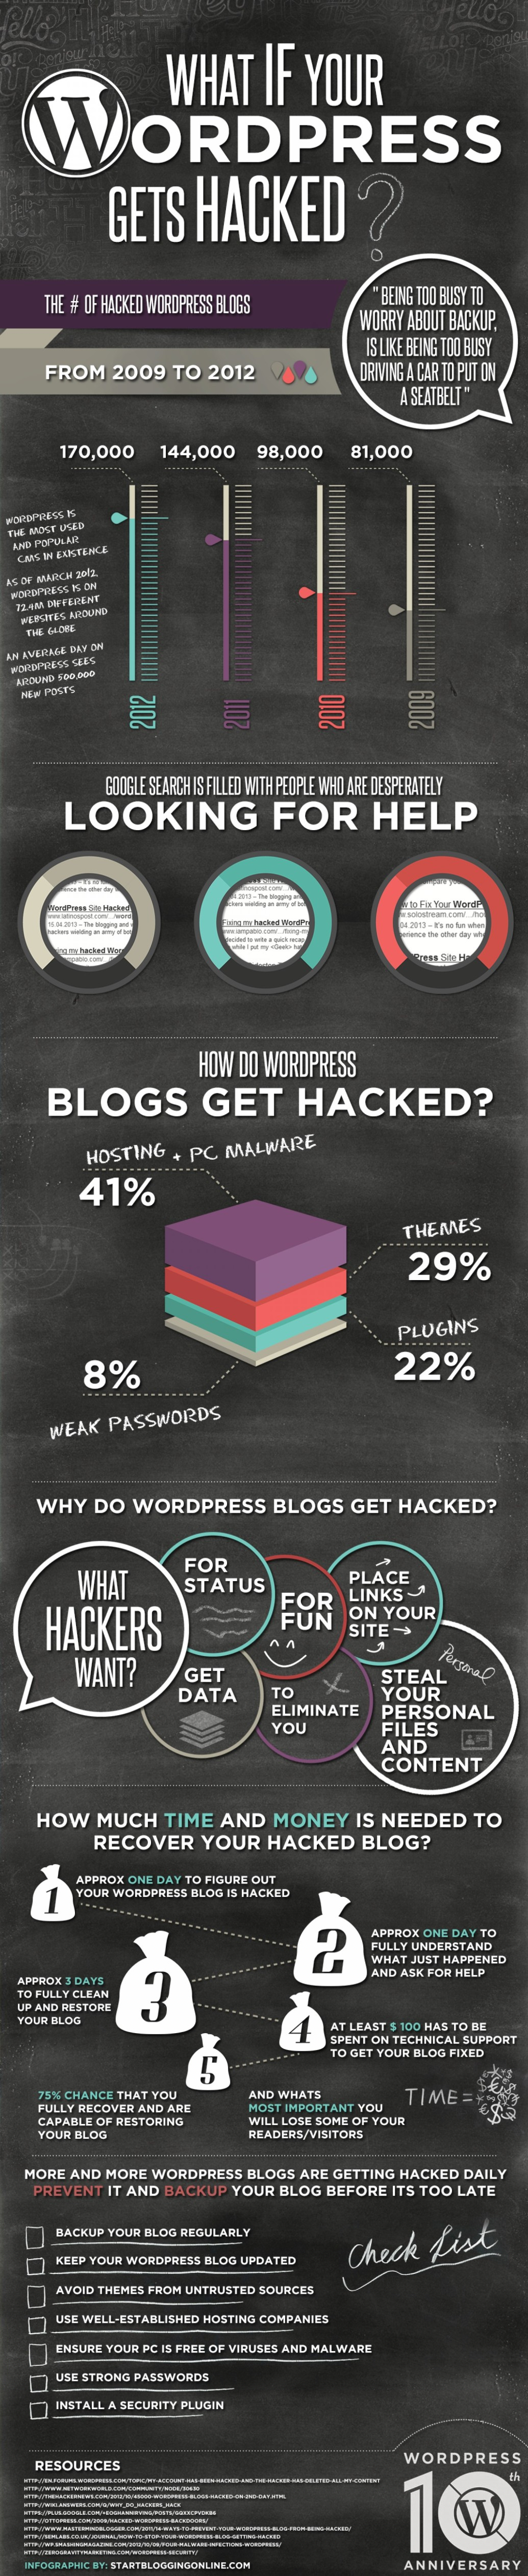 16. What If Your WordPress Gets Hacked